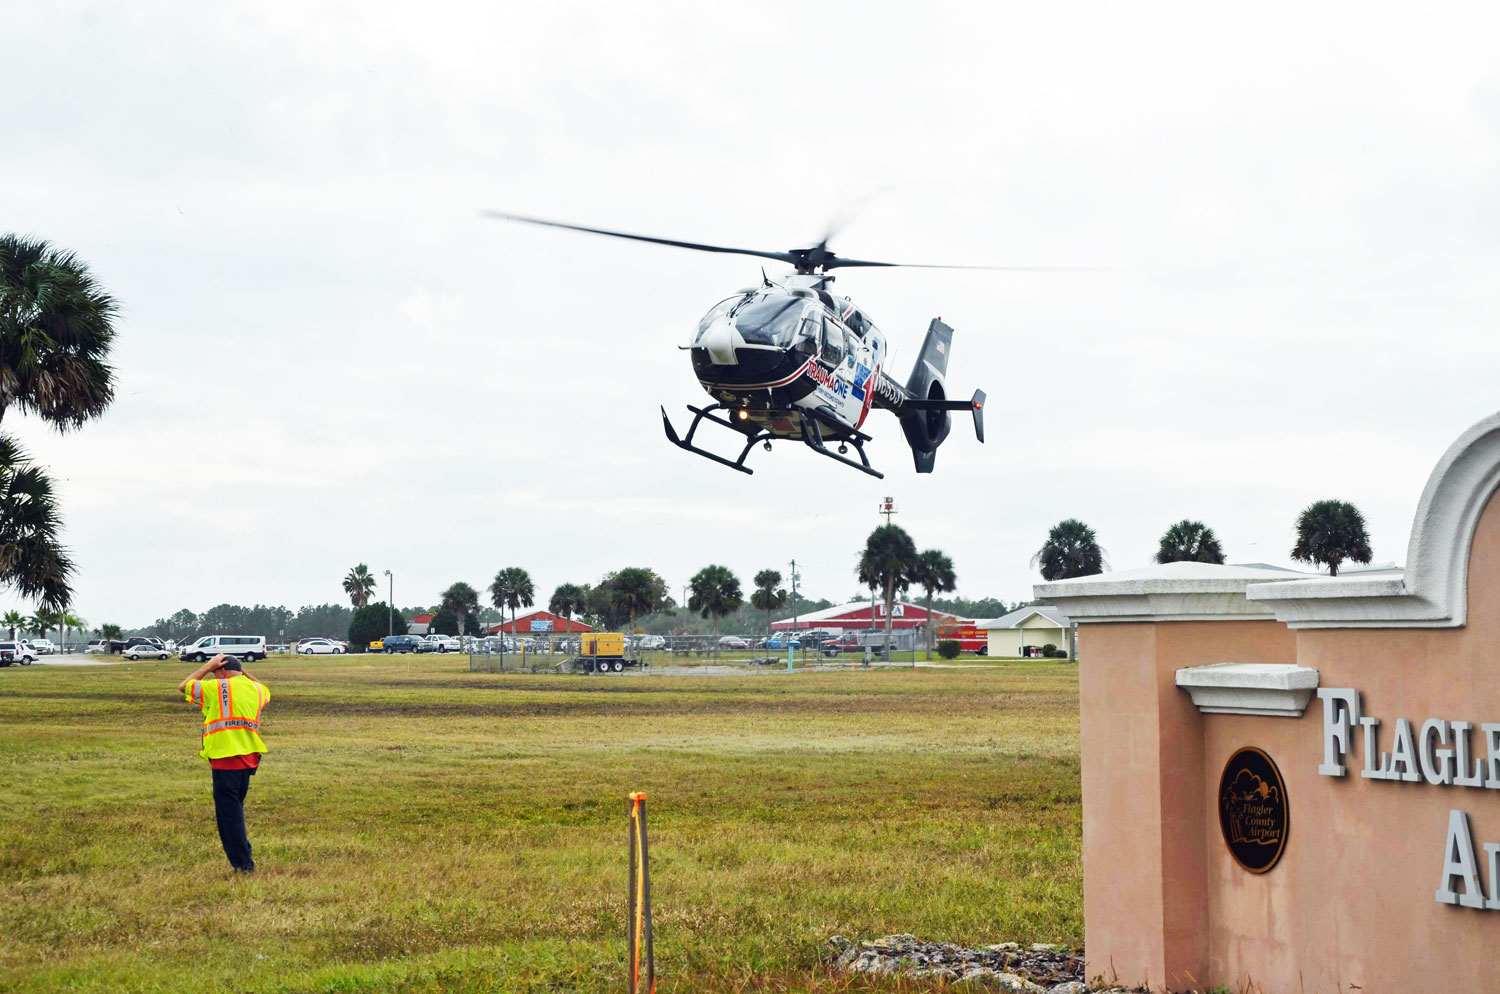 Trauma One lifting off with a patient from a field in front of the county airport. (© FlaglerLive)